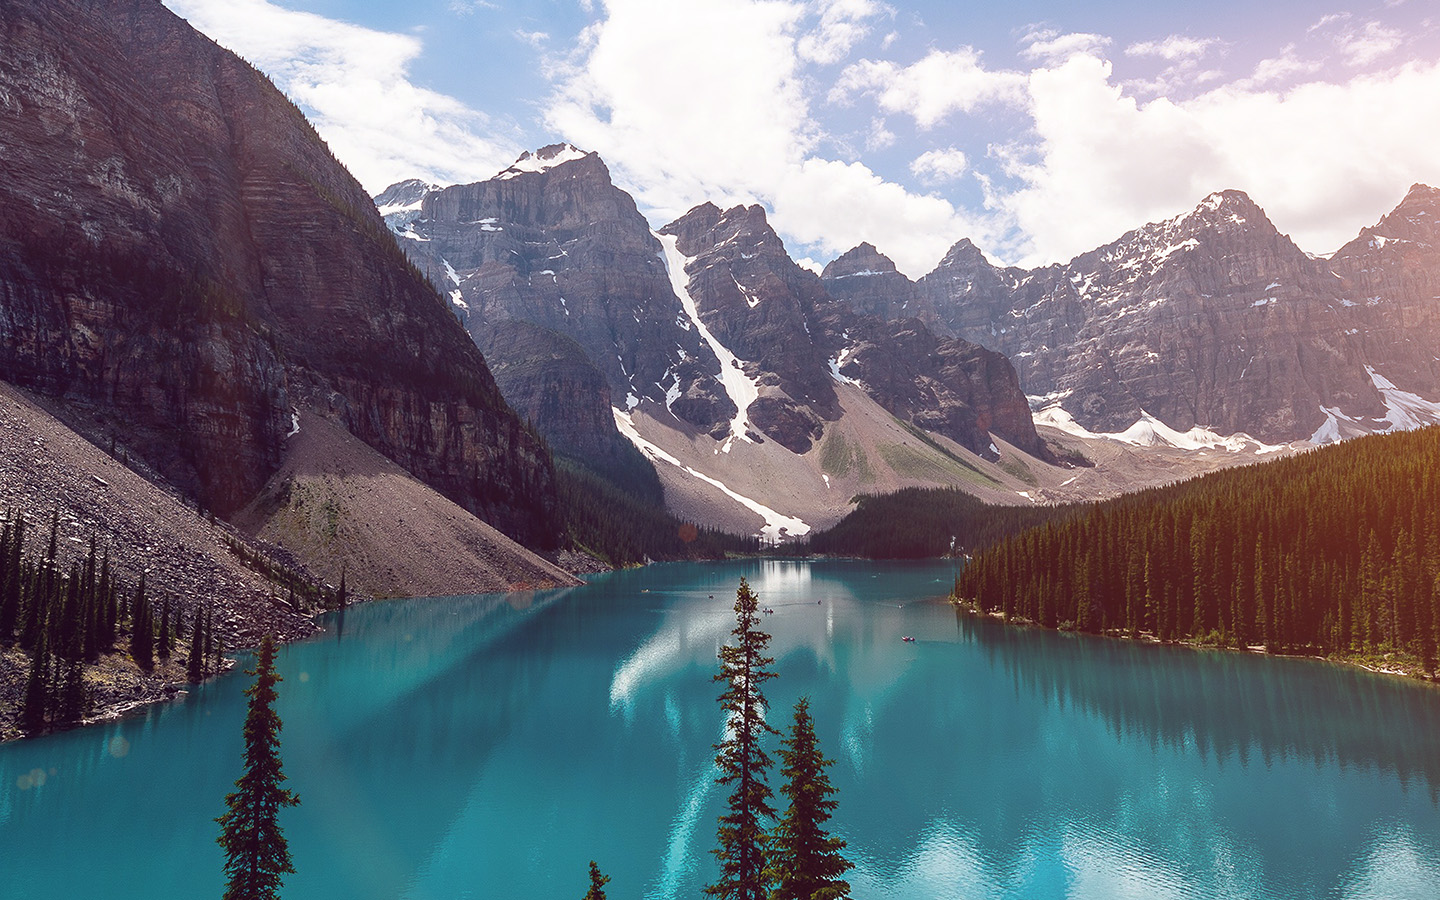 wallpaper for desktop, laptop | ne70-lake-louise-mountain ...